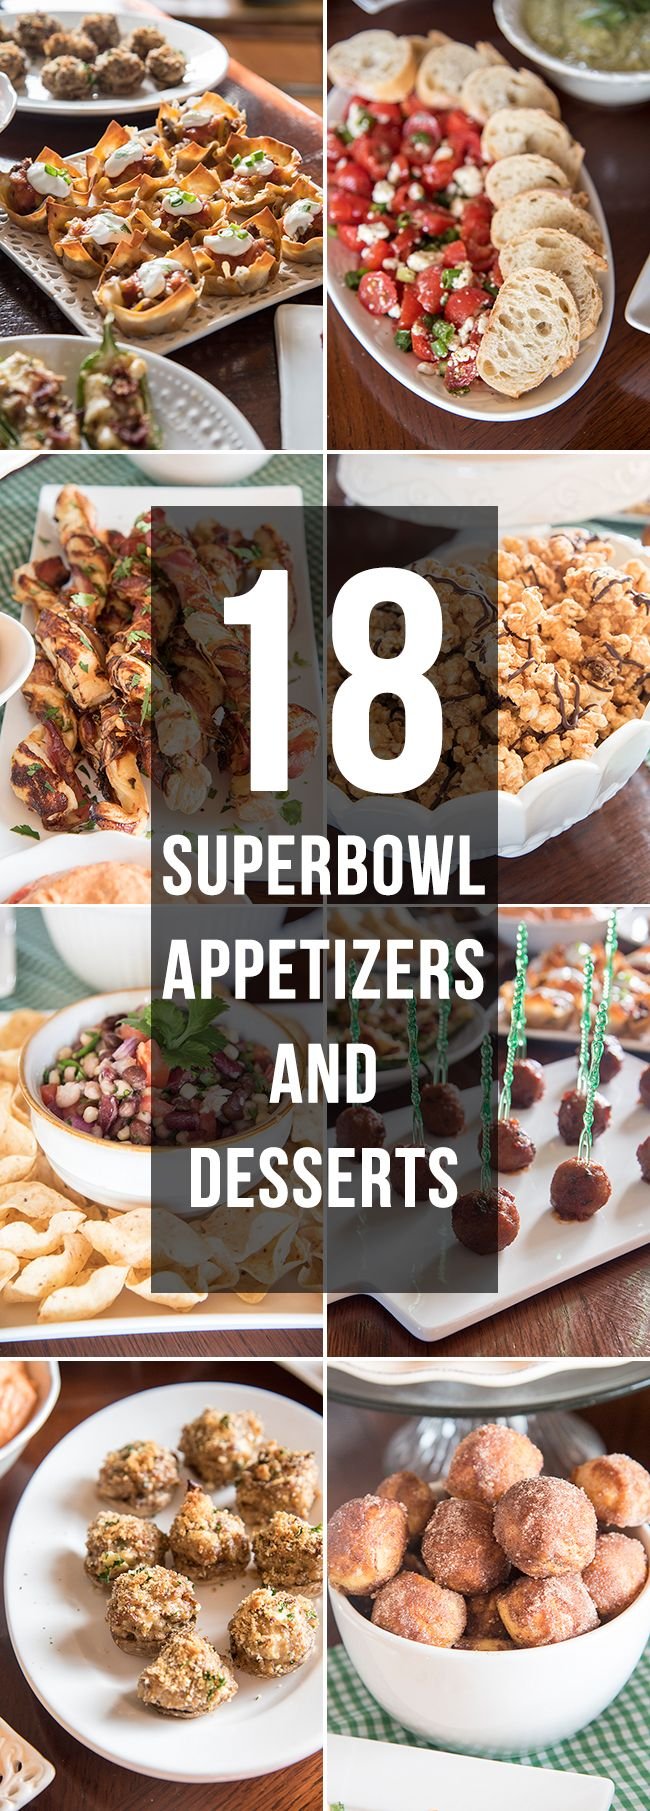 Over 18 of the best delicious superbowl appetizers and desserts! If you need an idea for what to make for the superbowl, we've got you covered!